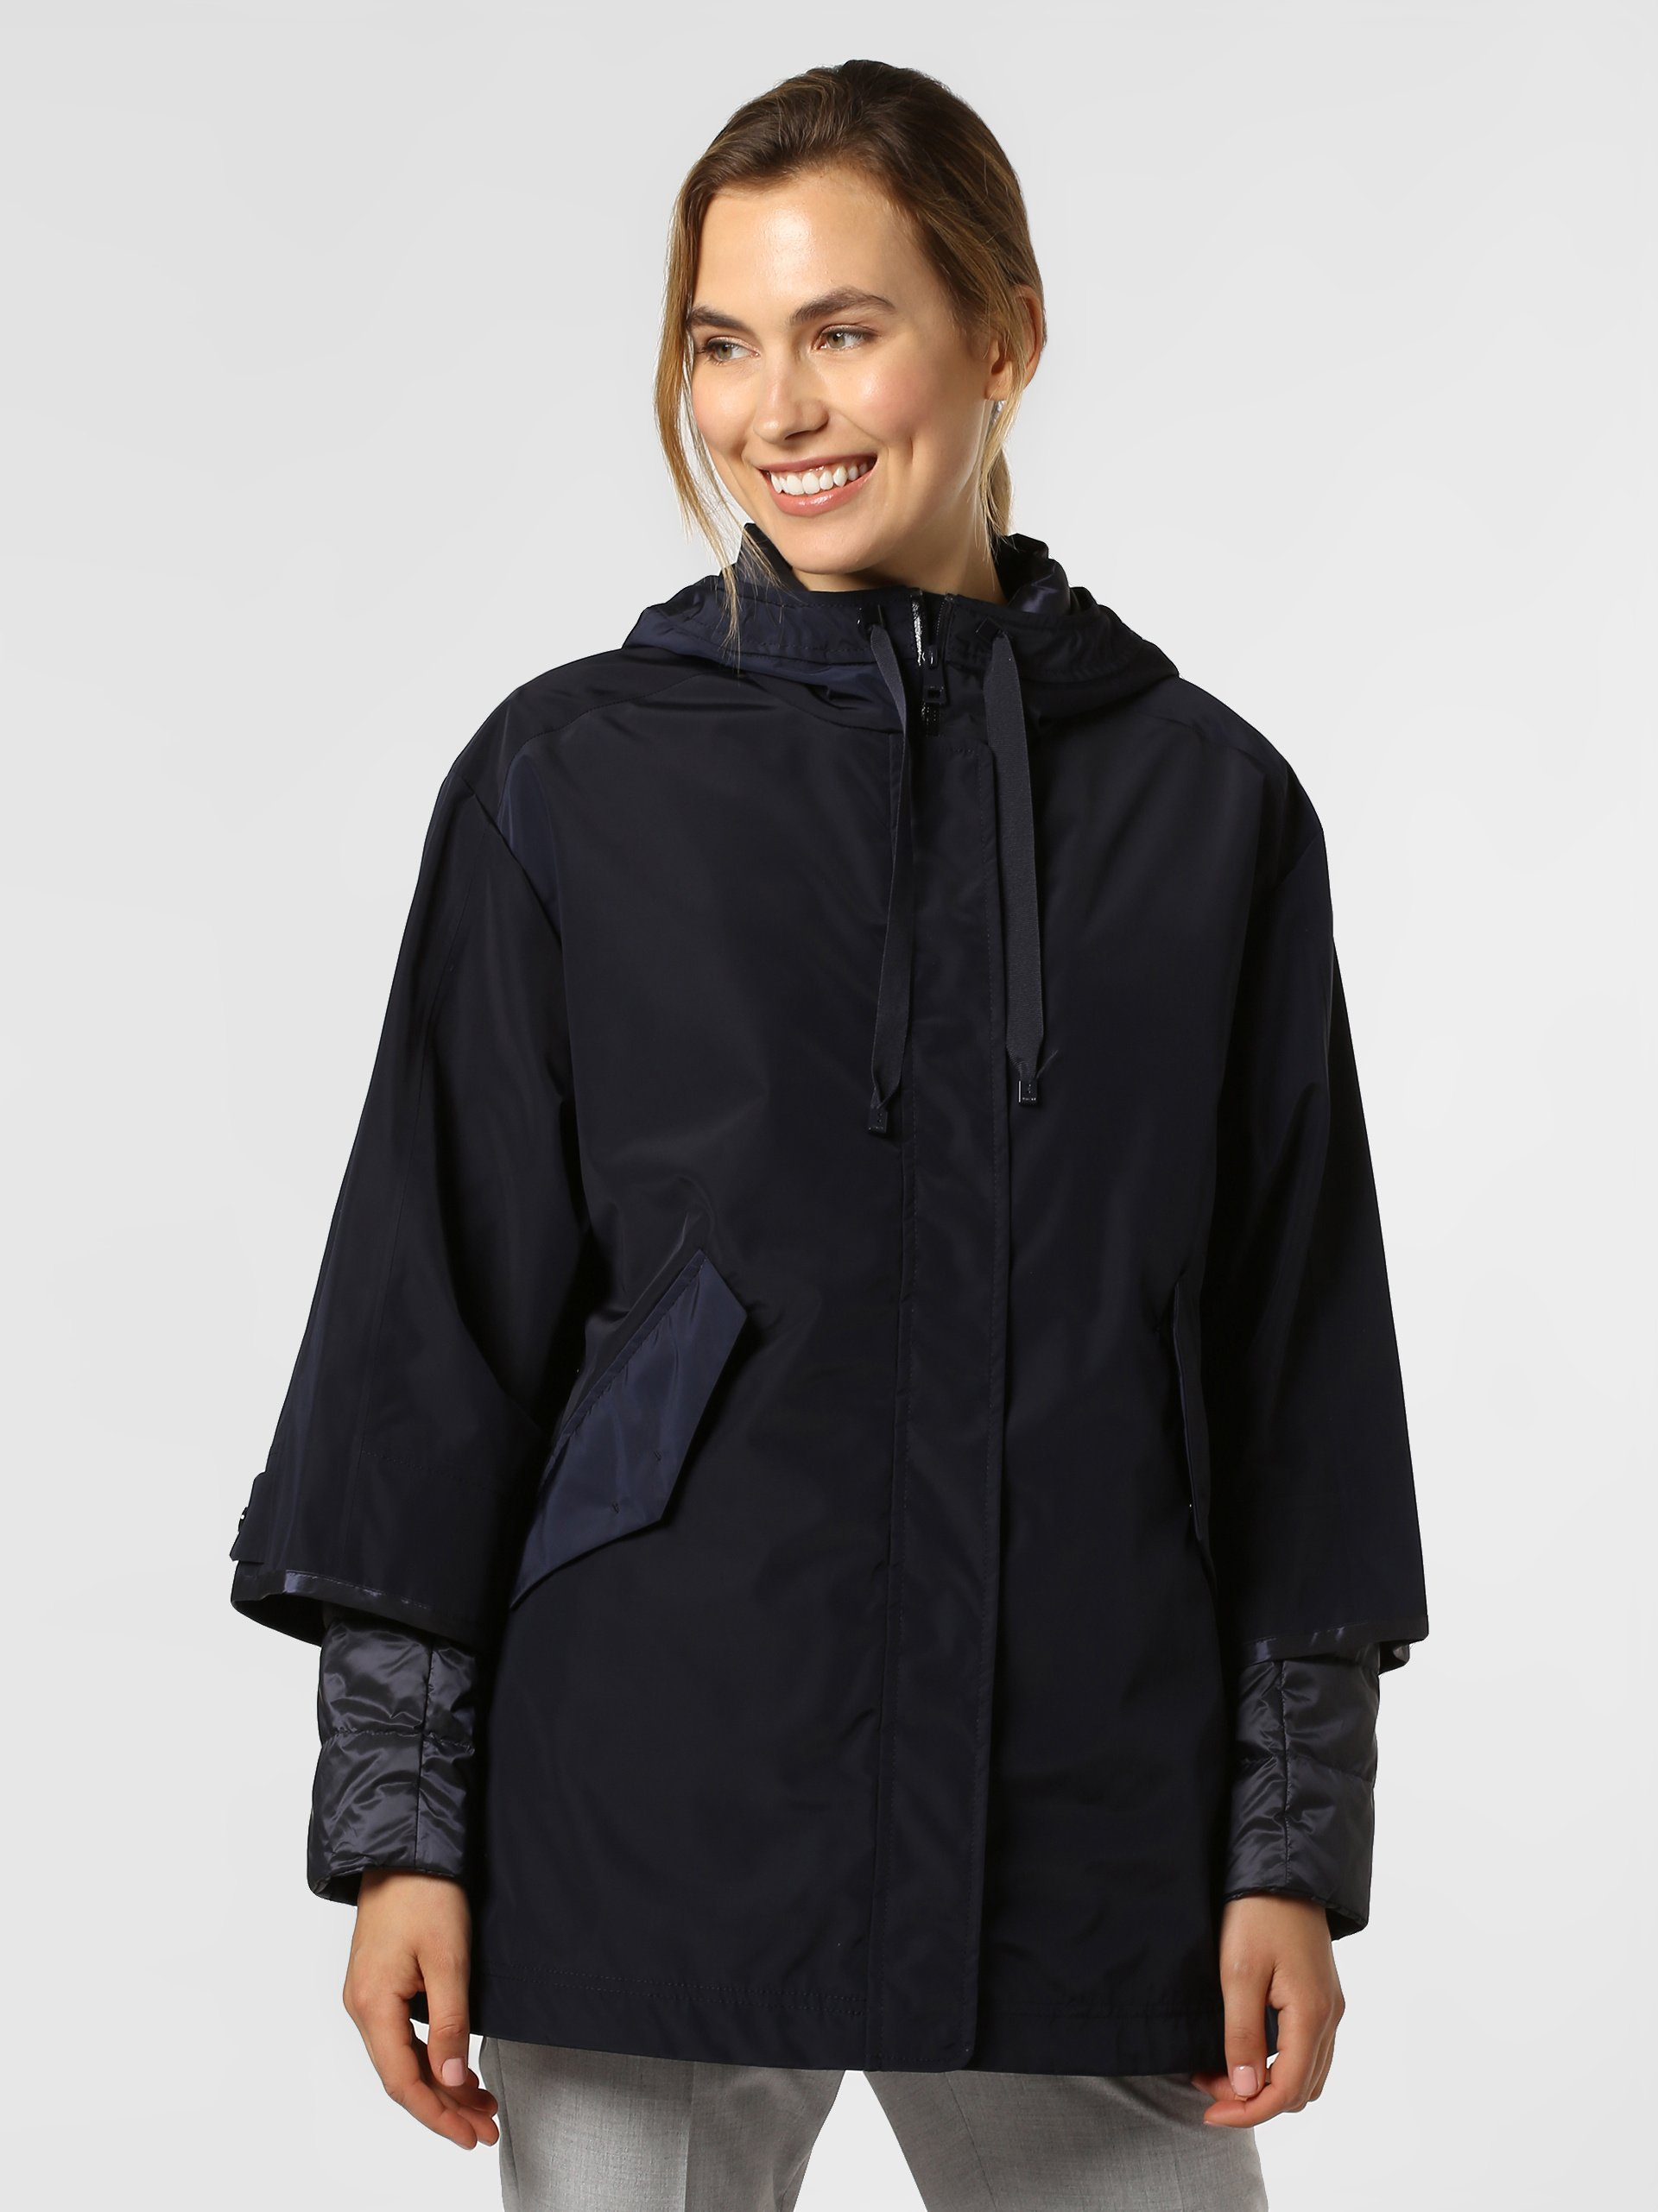 Marc Cain Collections Damen 3-in-1 Funktionsjacke